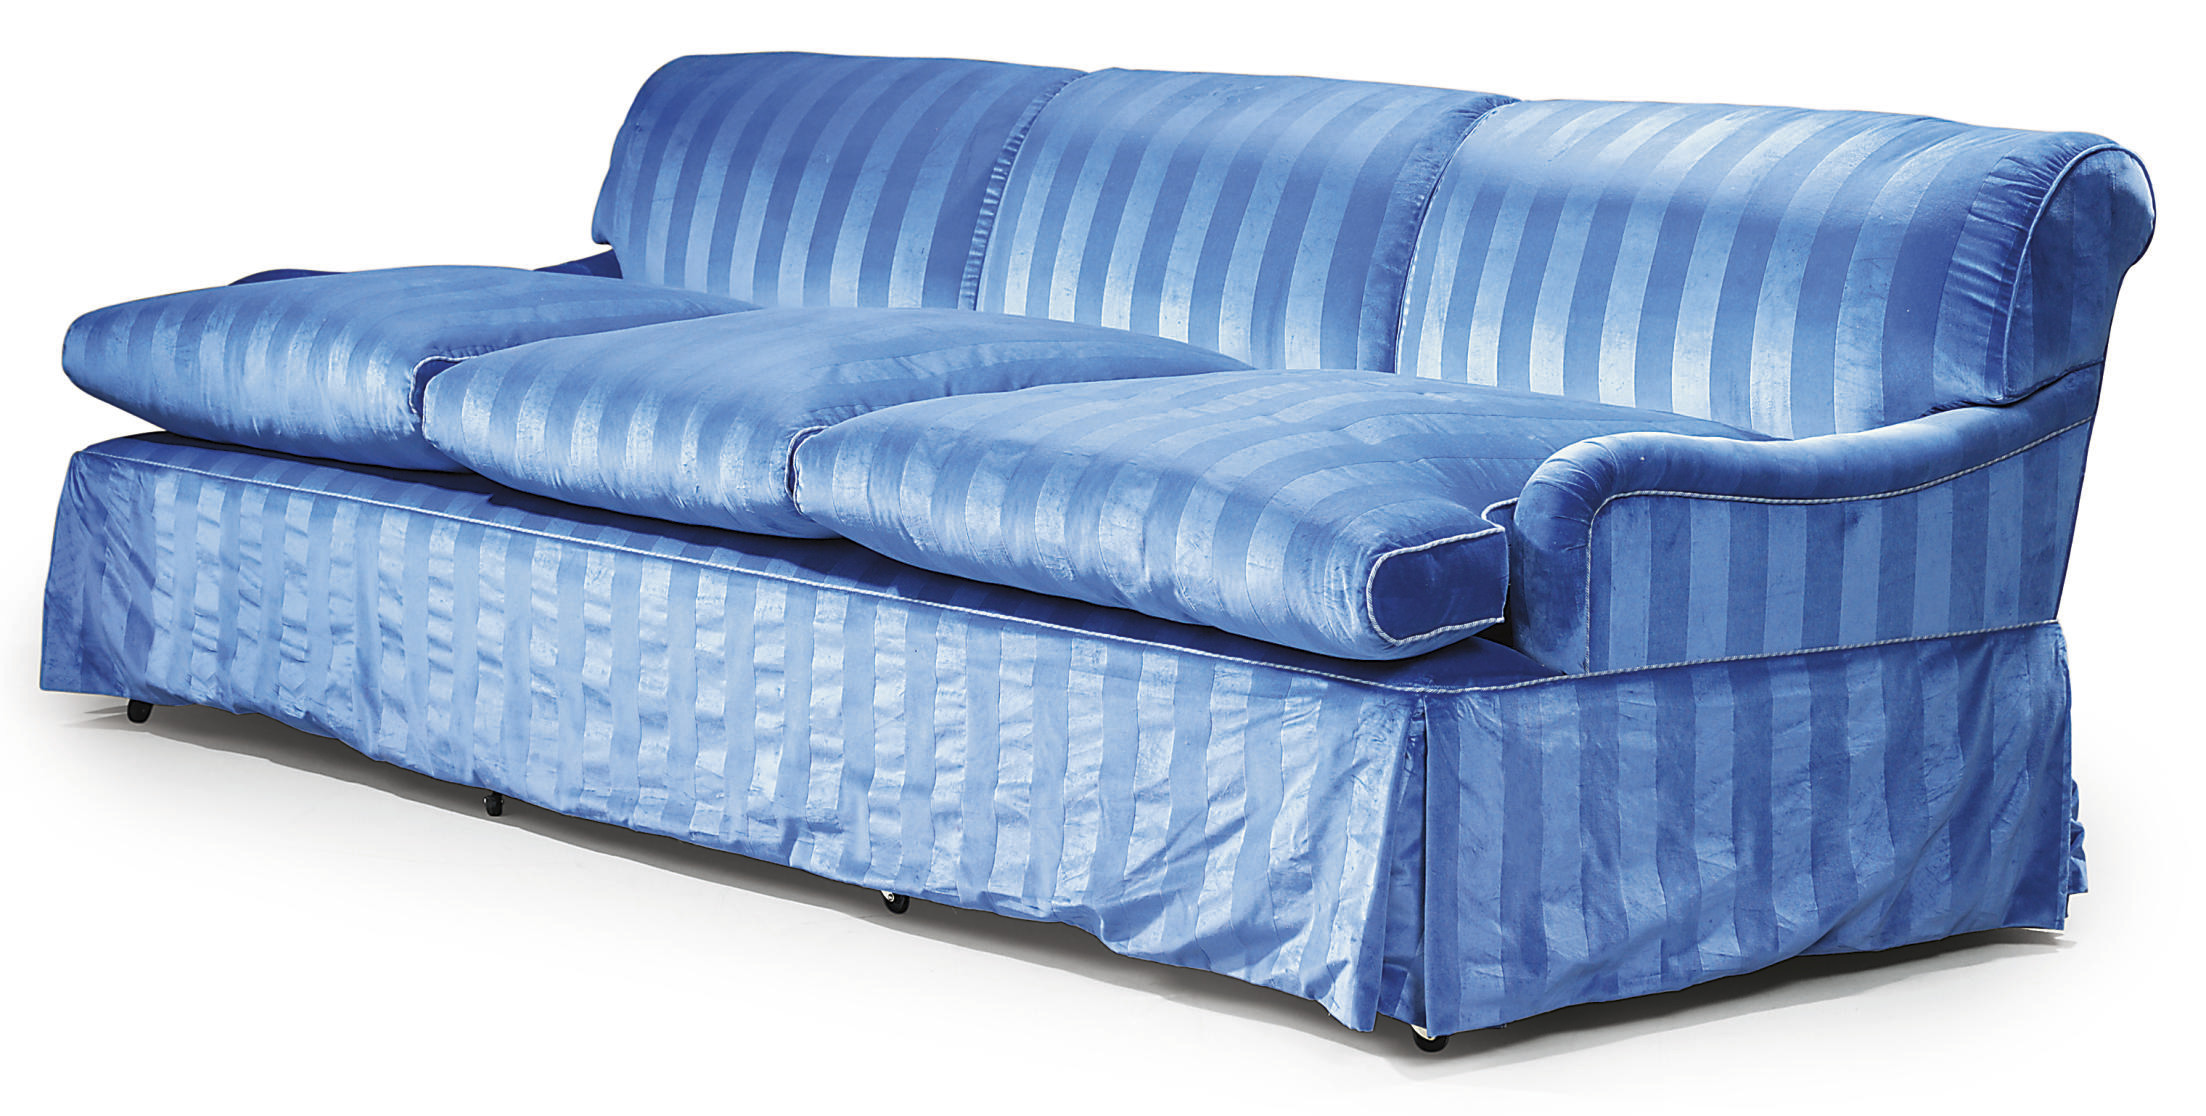 A LARGE MODERN UPHOLSTERED BLUE VELVET SOFA